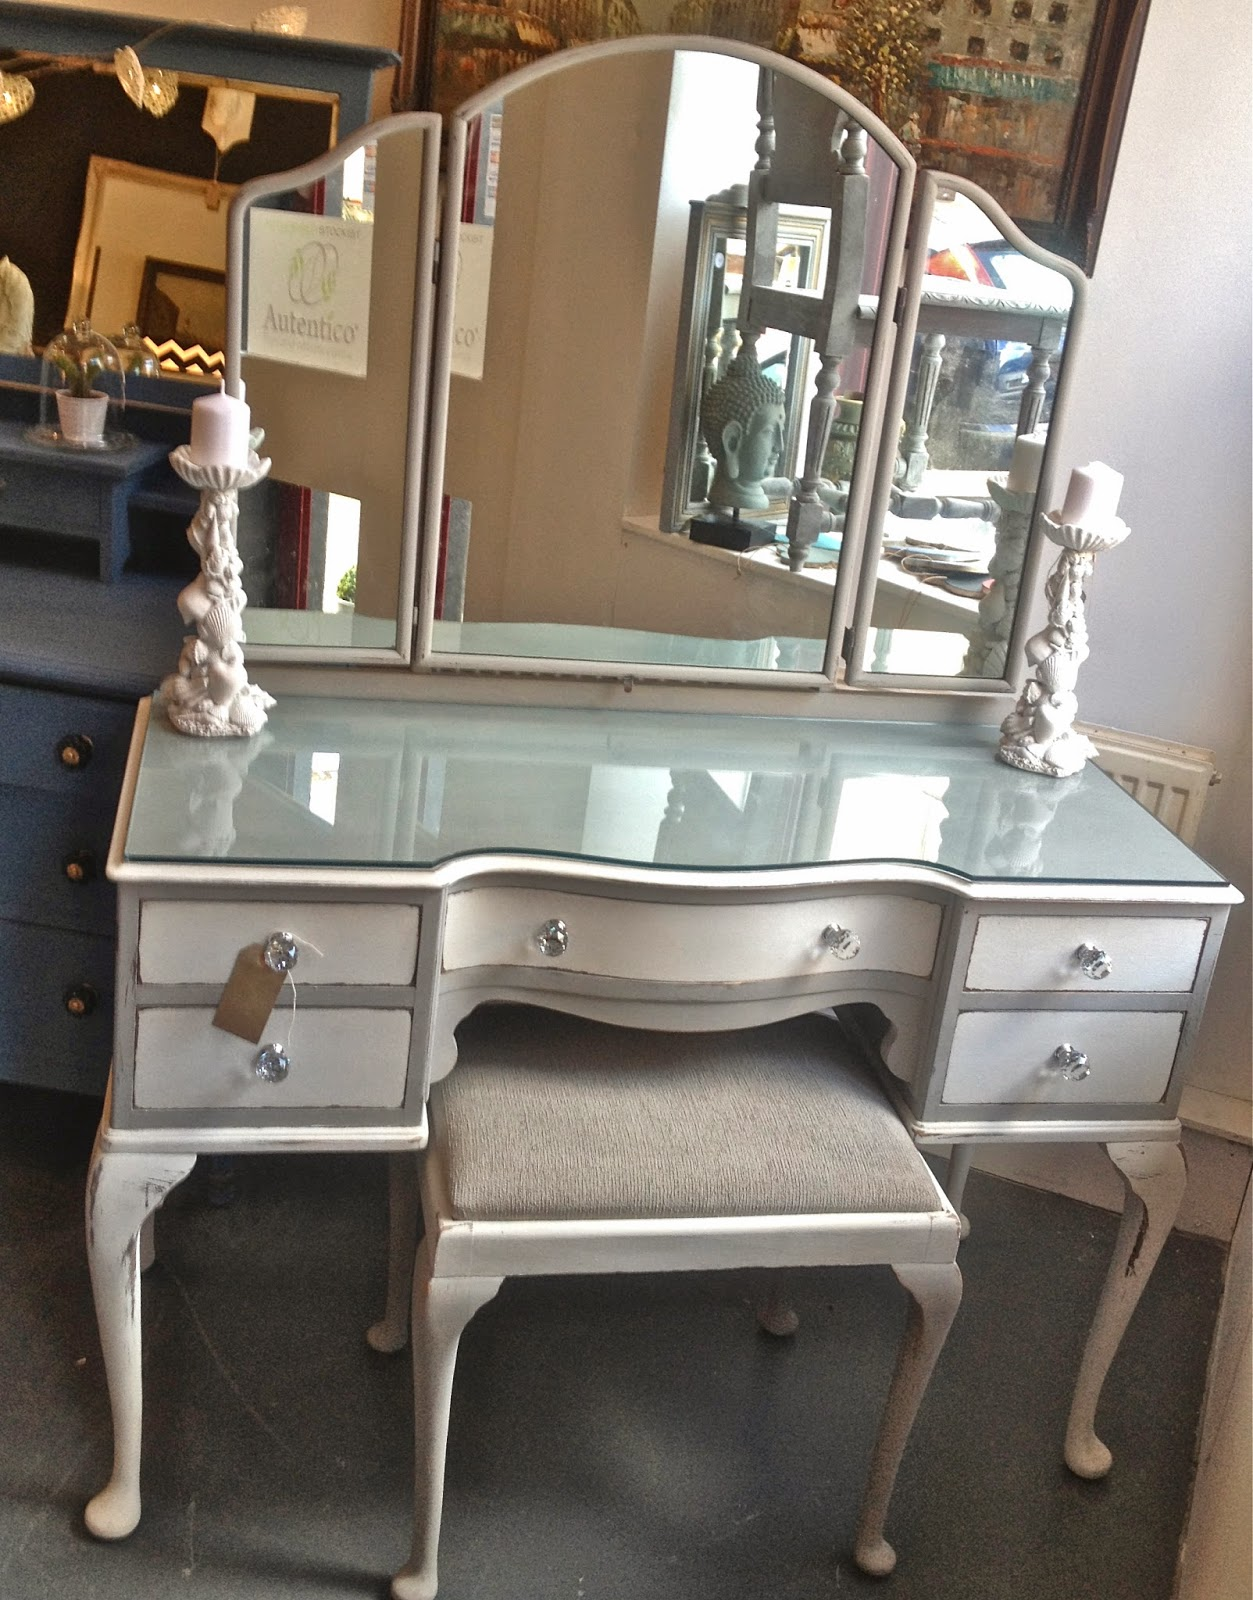 Chouchou vintage queen anne dressing table and stool refurb shabby chic dressing table heres a couple of looks at her majesty as was before queen anne repro was very popular in the 1950s and this piece would geotapseo Images